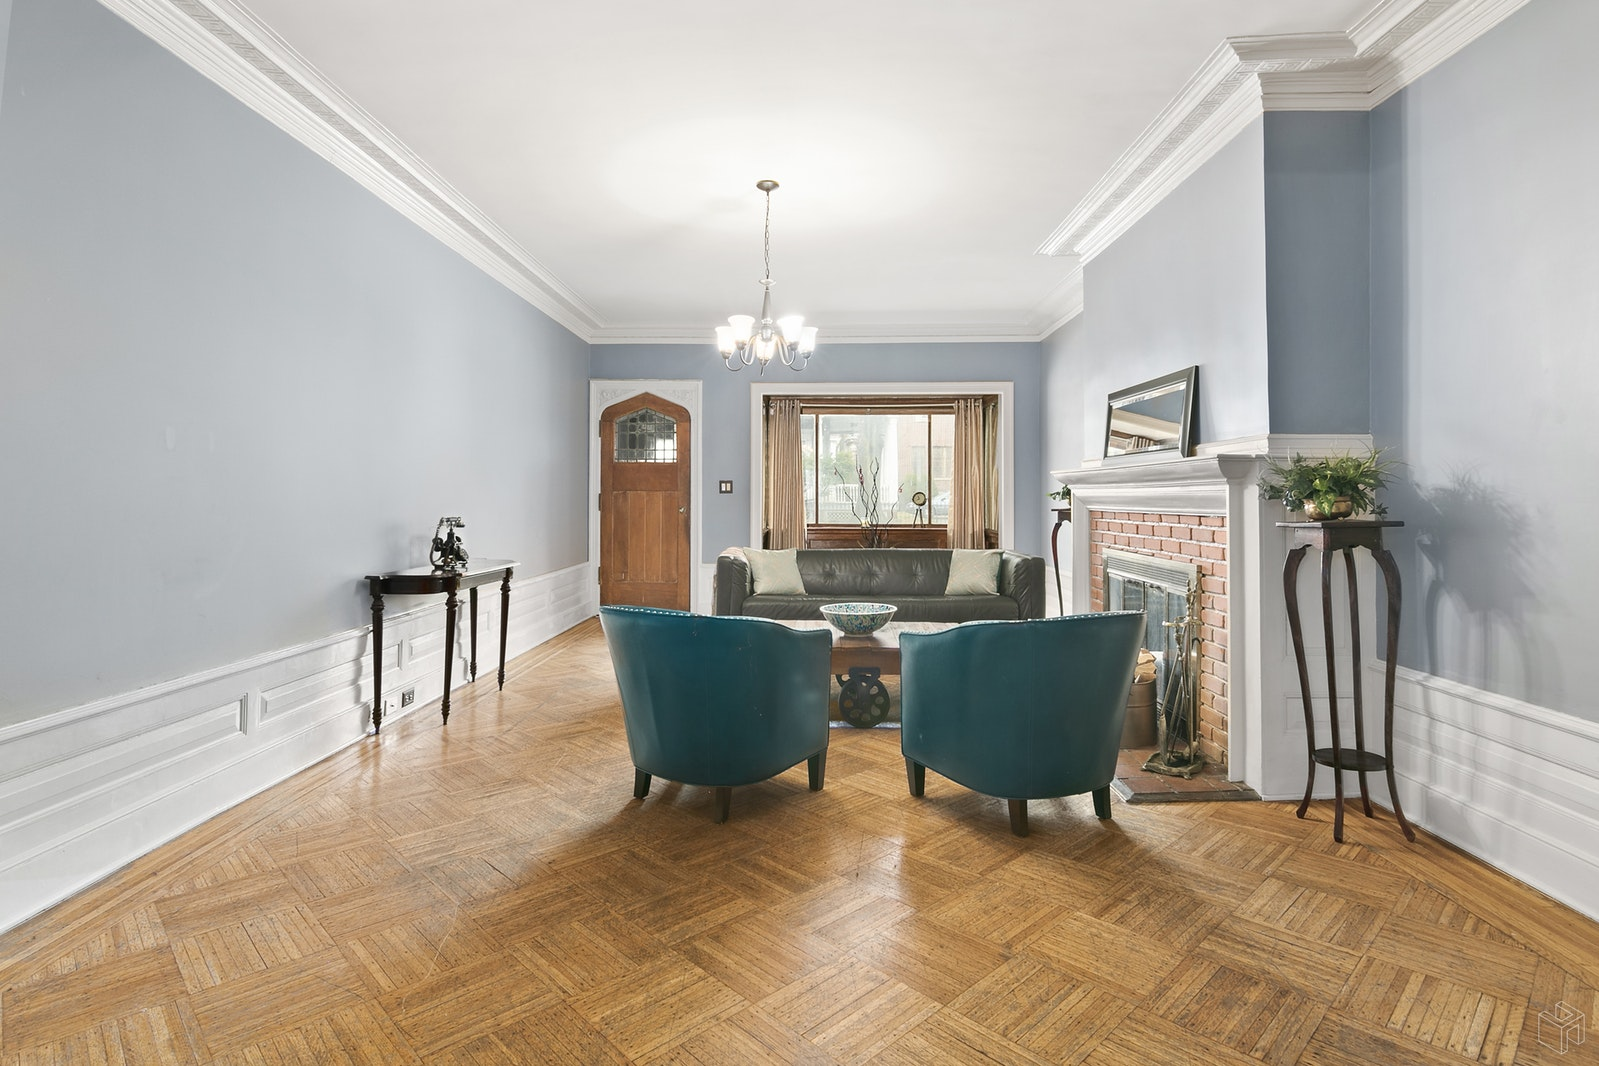 2108 Kenmore Terrace, Flatbush, Brooklyn, NY, 11226, $1,650,000, Property For Sale, Halstead Real Estate, Photo 3